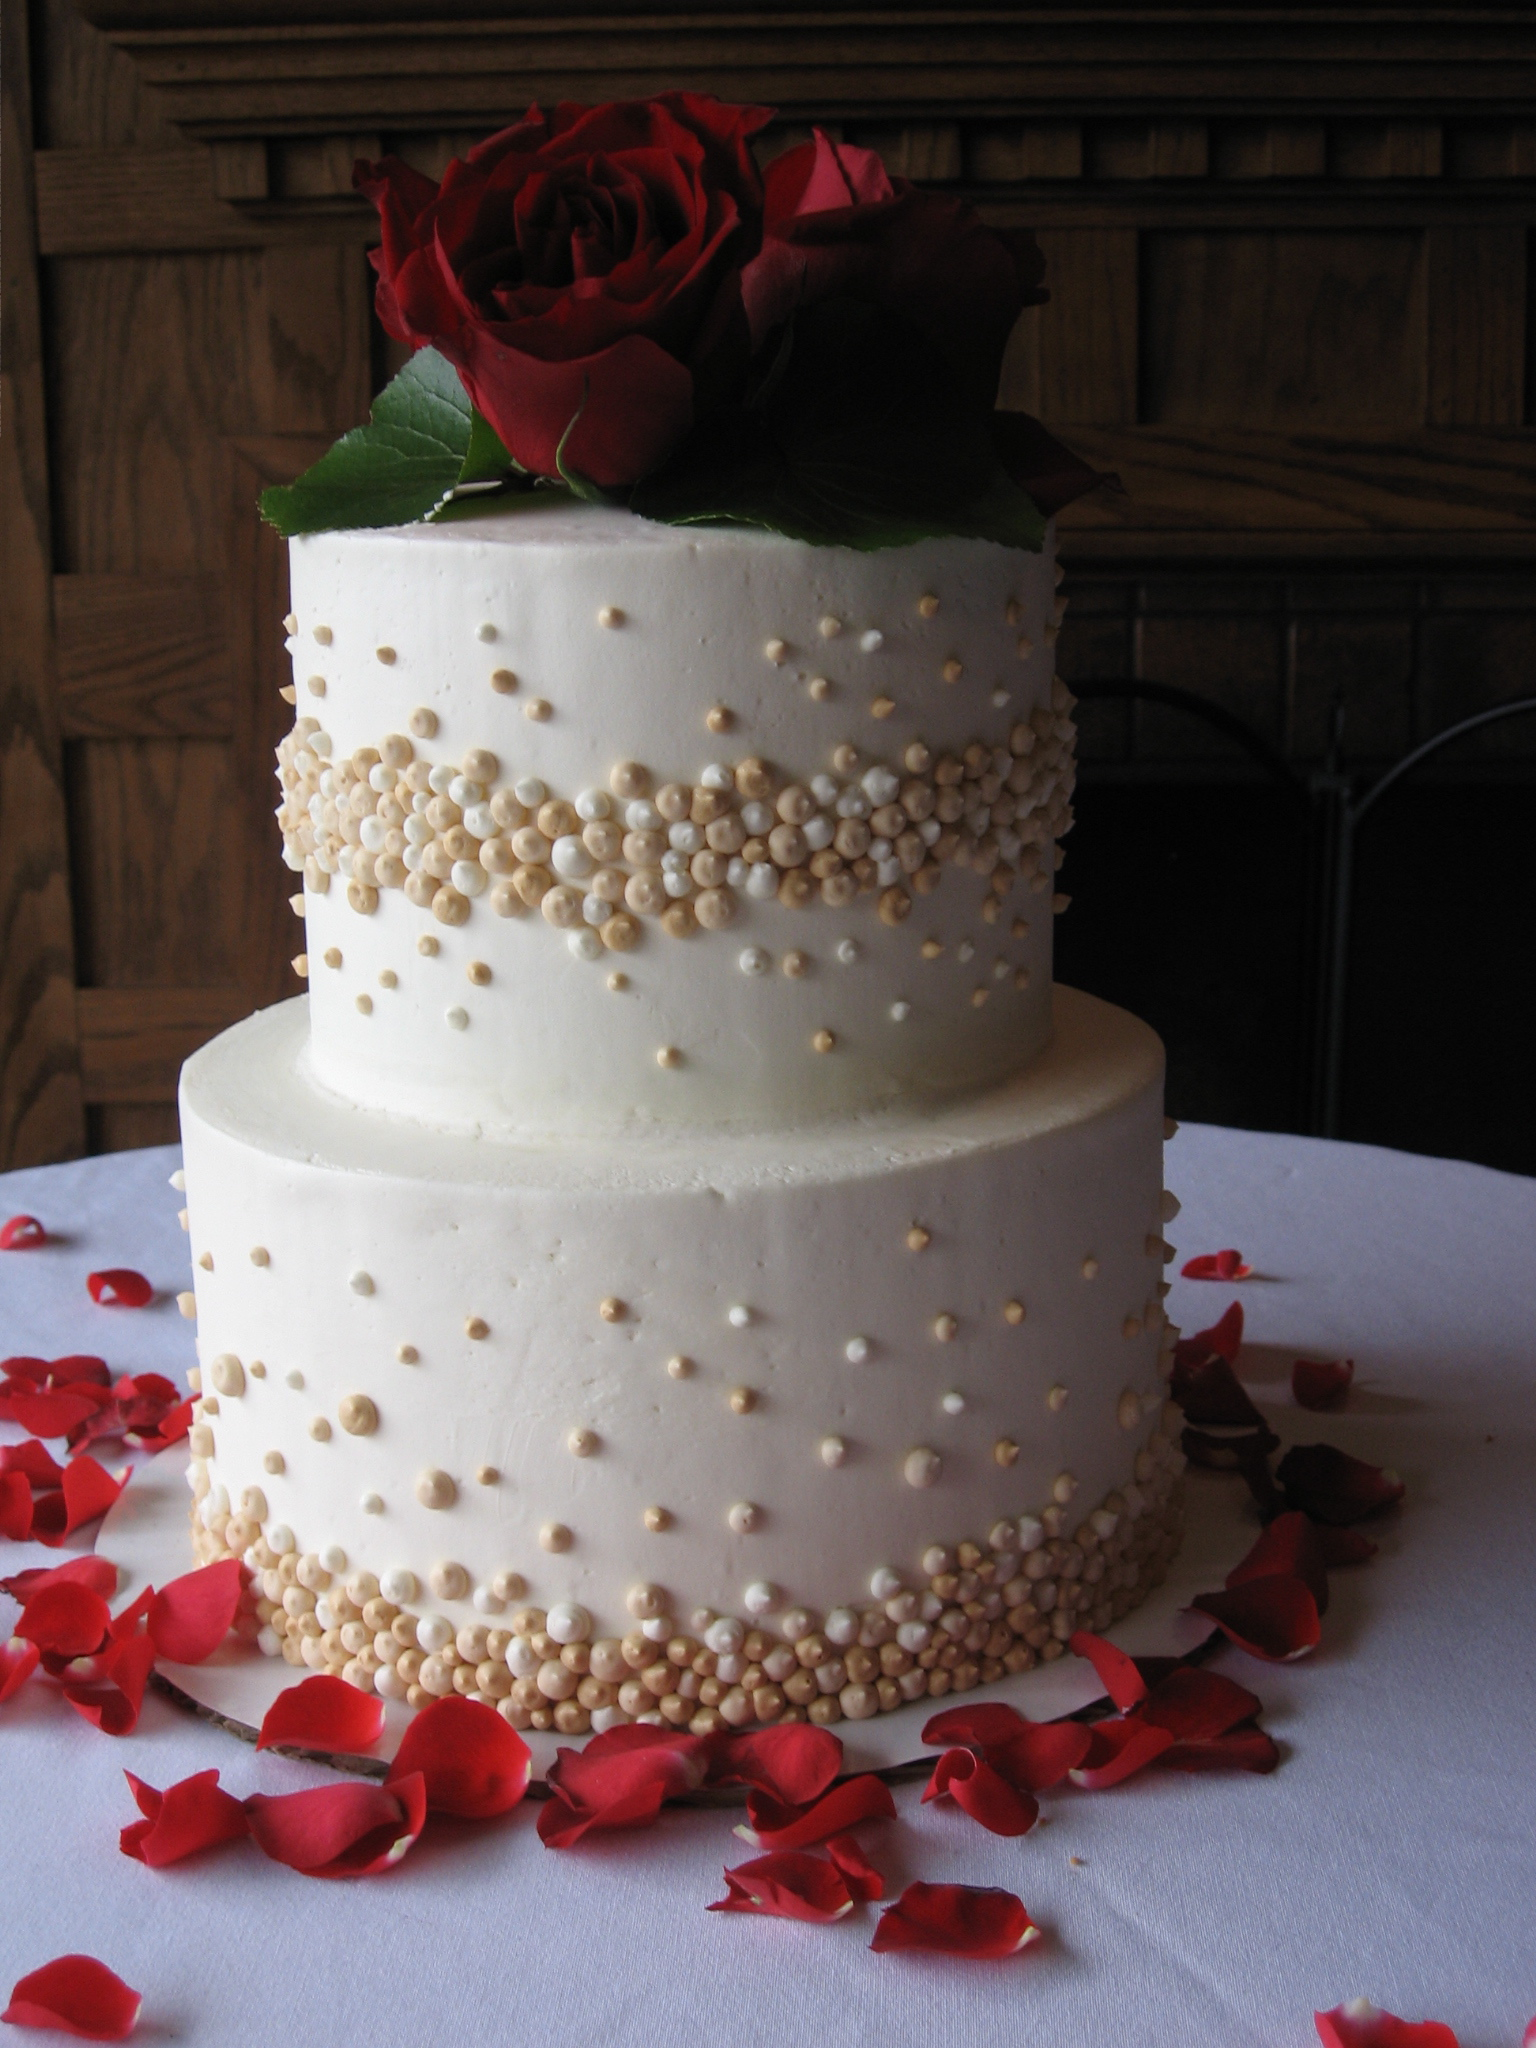 hallmark cakes nc mountain wedding cakes boone nc wedding cakes champagne bubbles. Black Bedroom Furniture Sets. Home Design Ideas